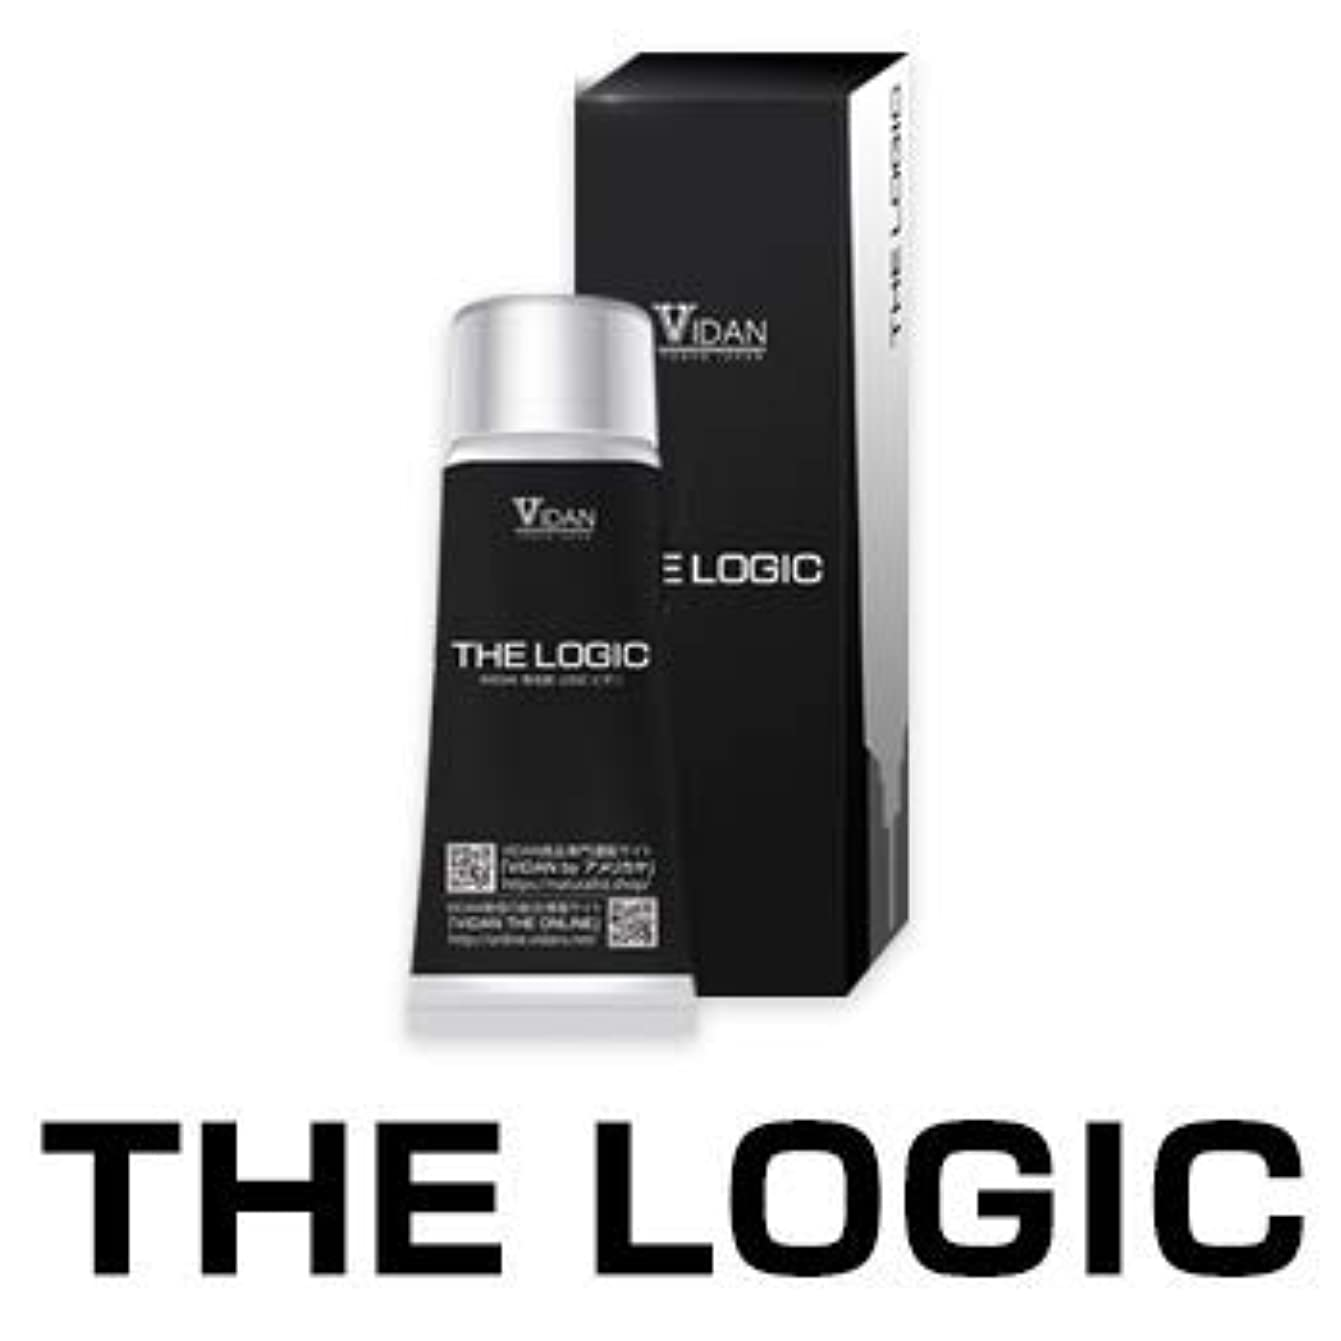 VIDAN THE LOGIC 2点セット